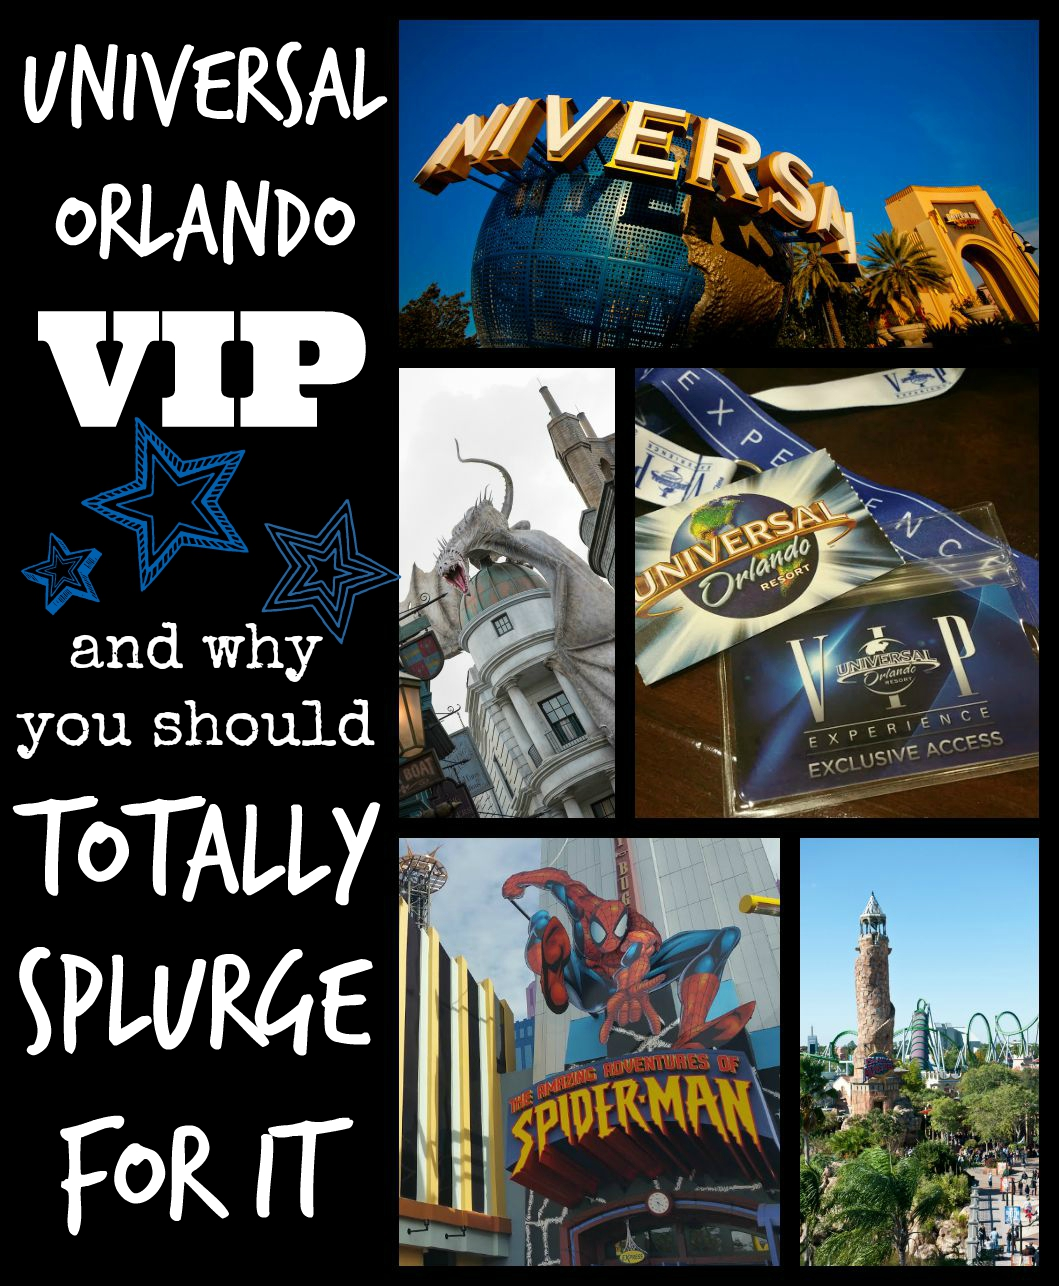 Universal Orlando VIP Tour Feature